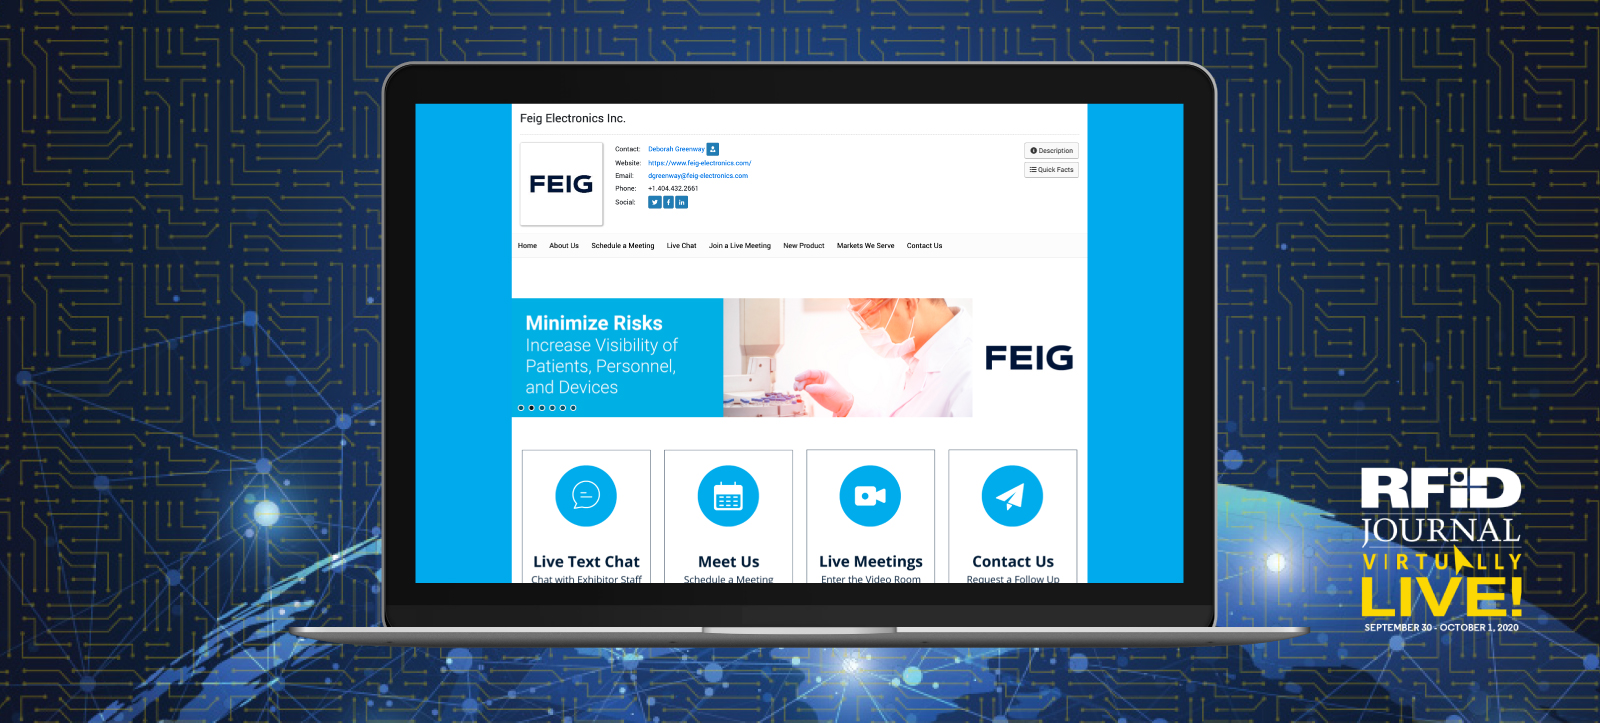 RFID Virtual | FEIG ELECTRONICS